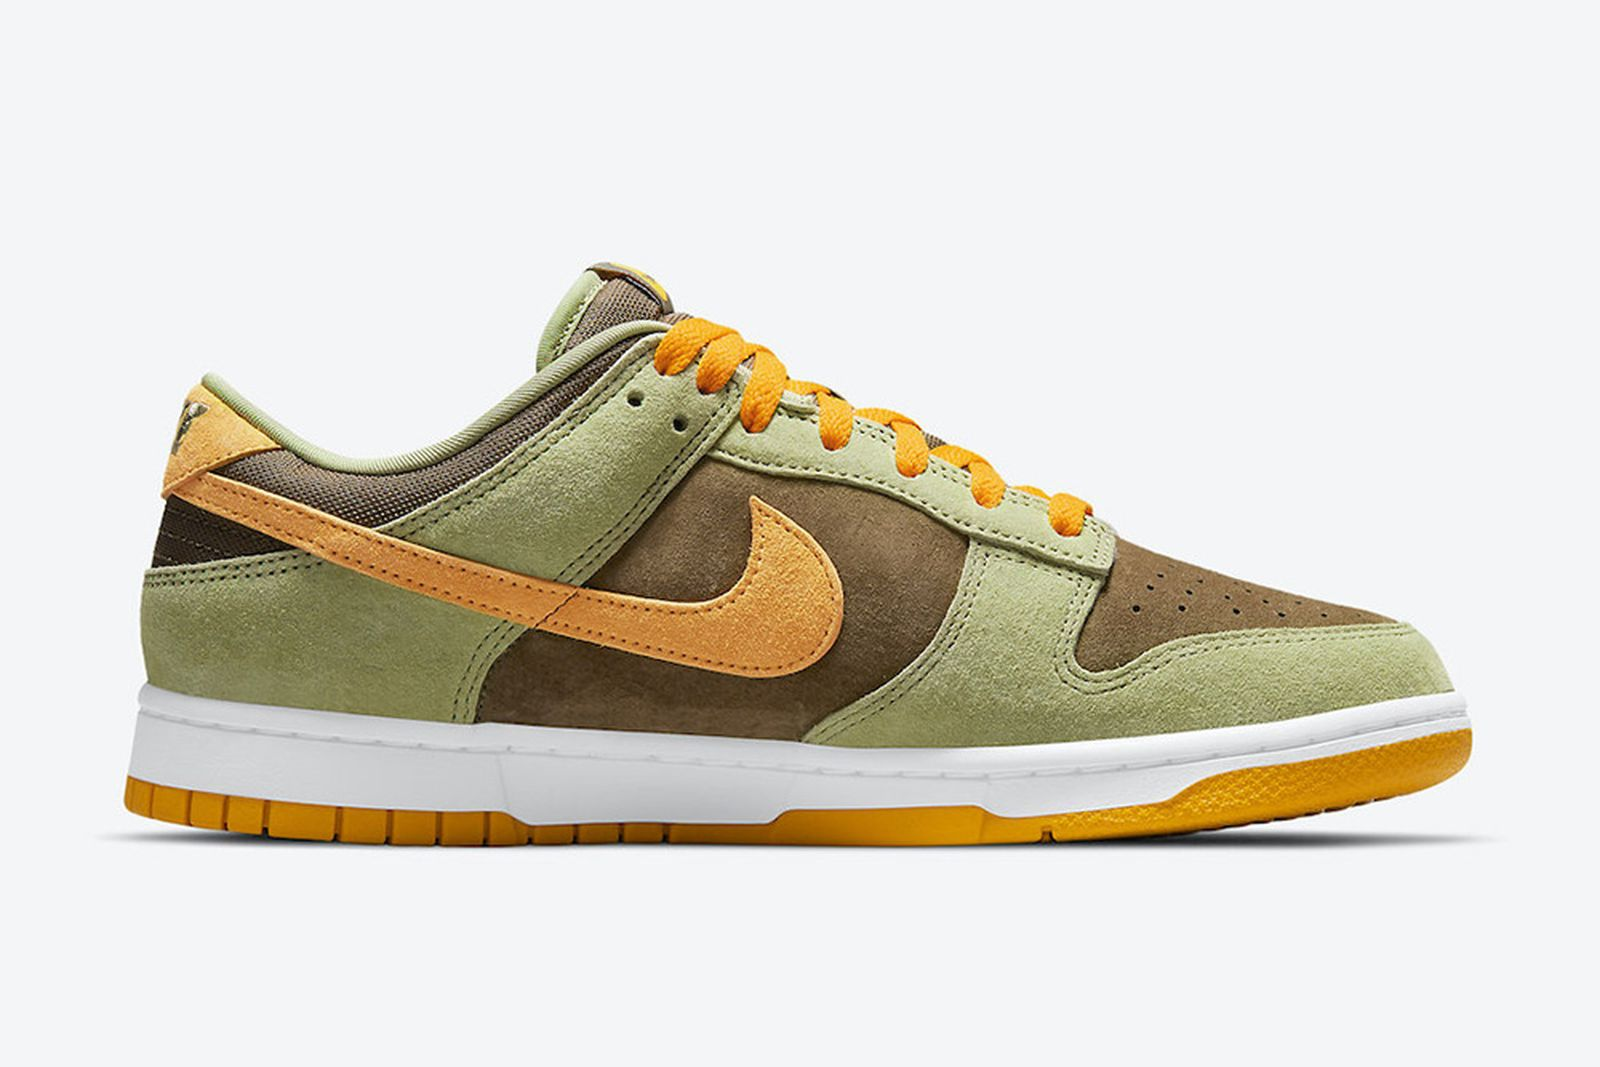 nike-dunk-low-dusty-olive-release-date-price-10